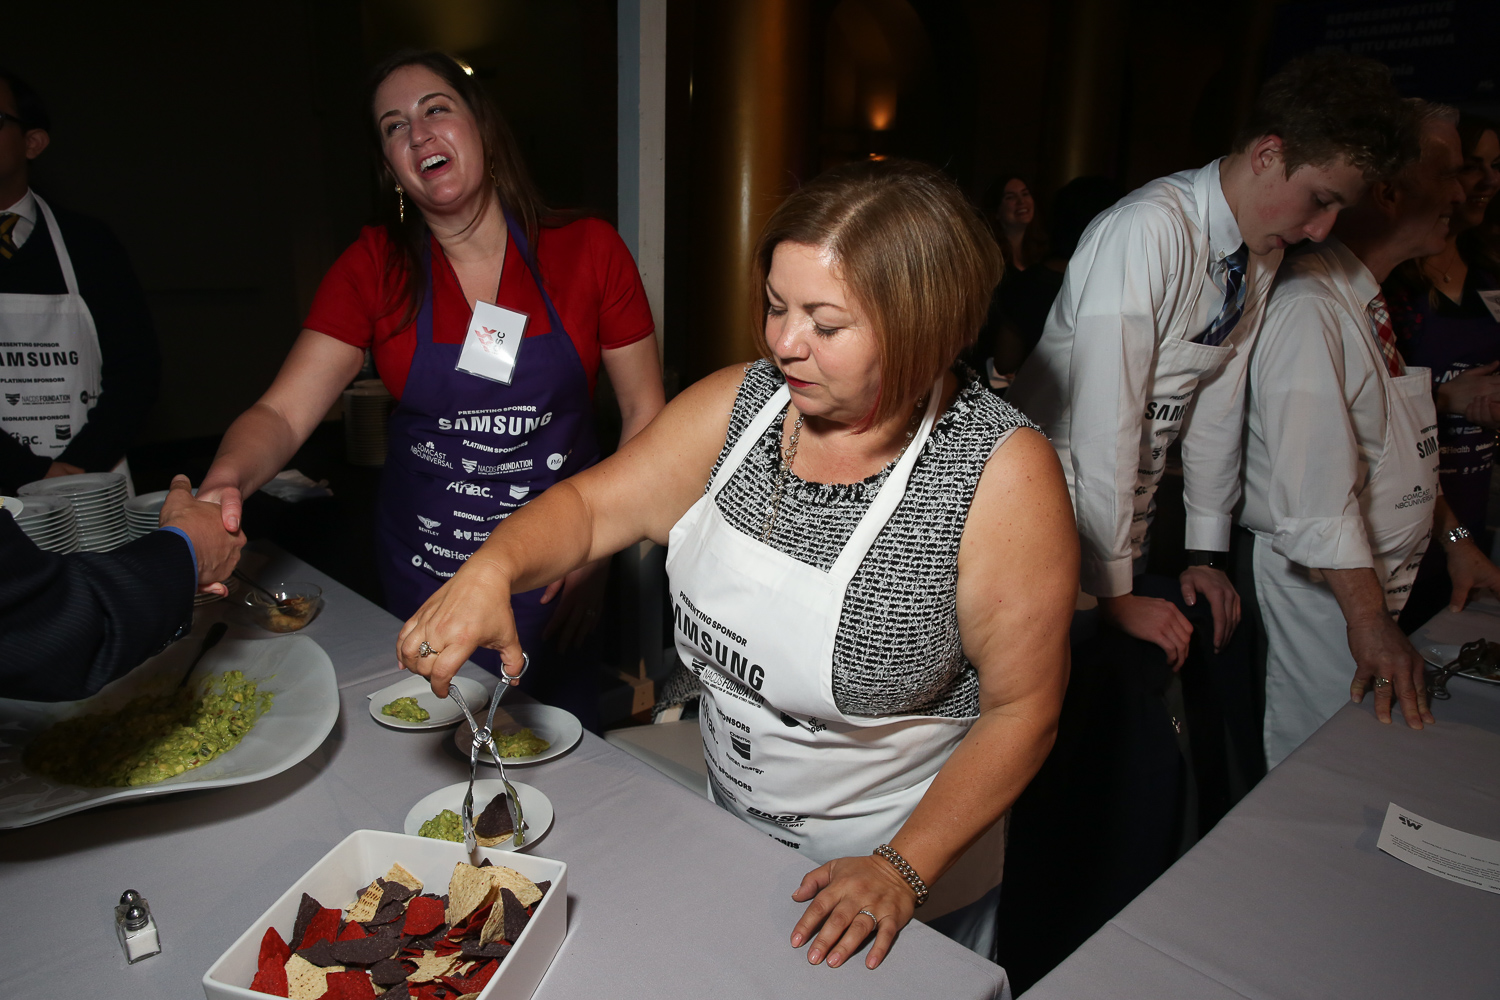 Rep. Linda Sanchez, whose guacamole took home the prize for being the healthiest dish.{ }(Amanda Andrade-Rhoades/DC Refined)